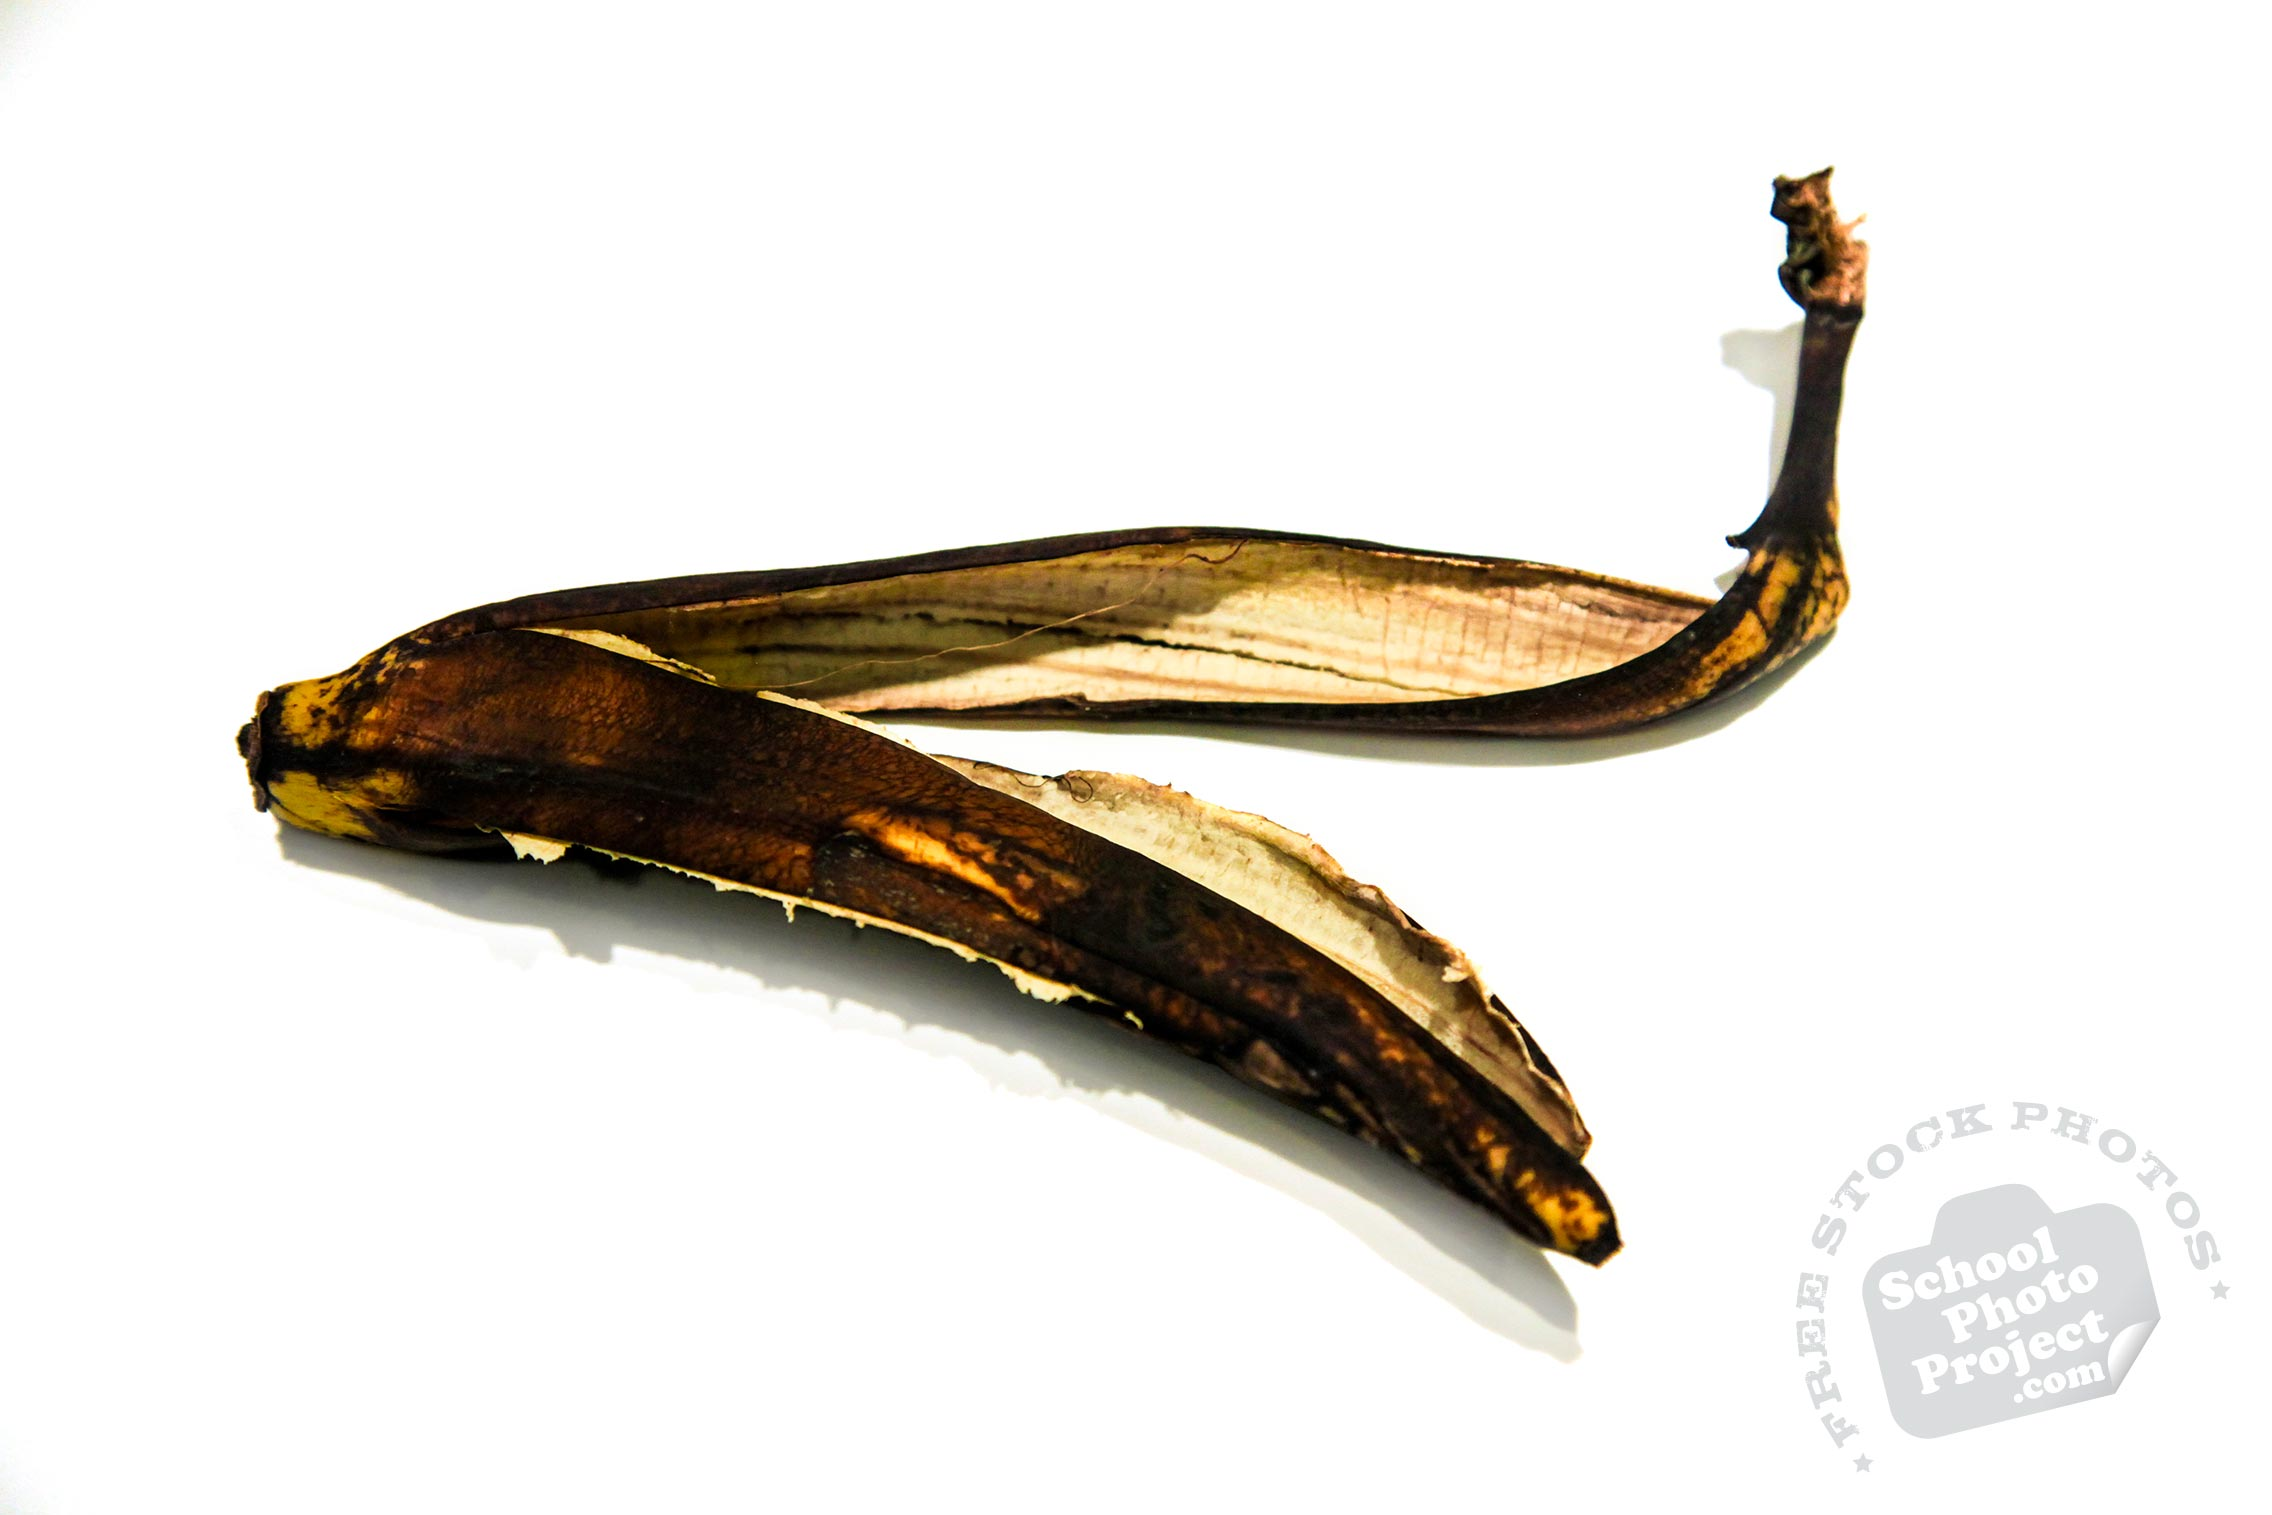 banana peel To whiten teeth with banana peel is very safe and healthy for teeth as banana peels are a wonderful source of minerals and vitamins they do not have the abrasiveness.